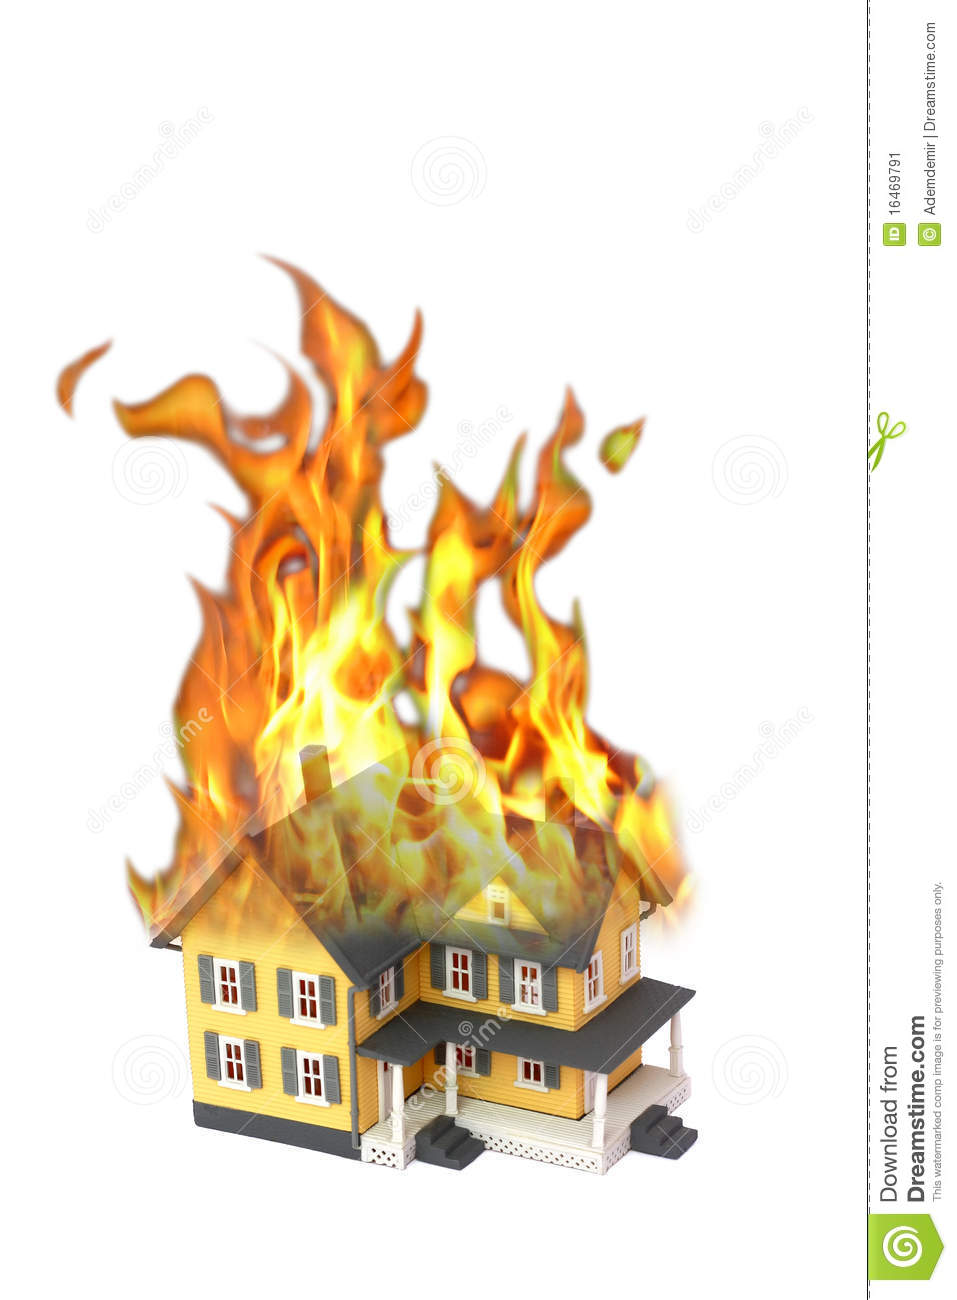 Brennendes haus clipart. Clipartfest burning house isolated